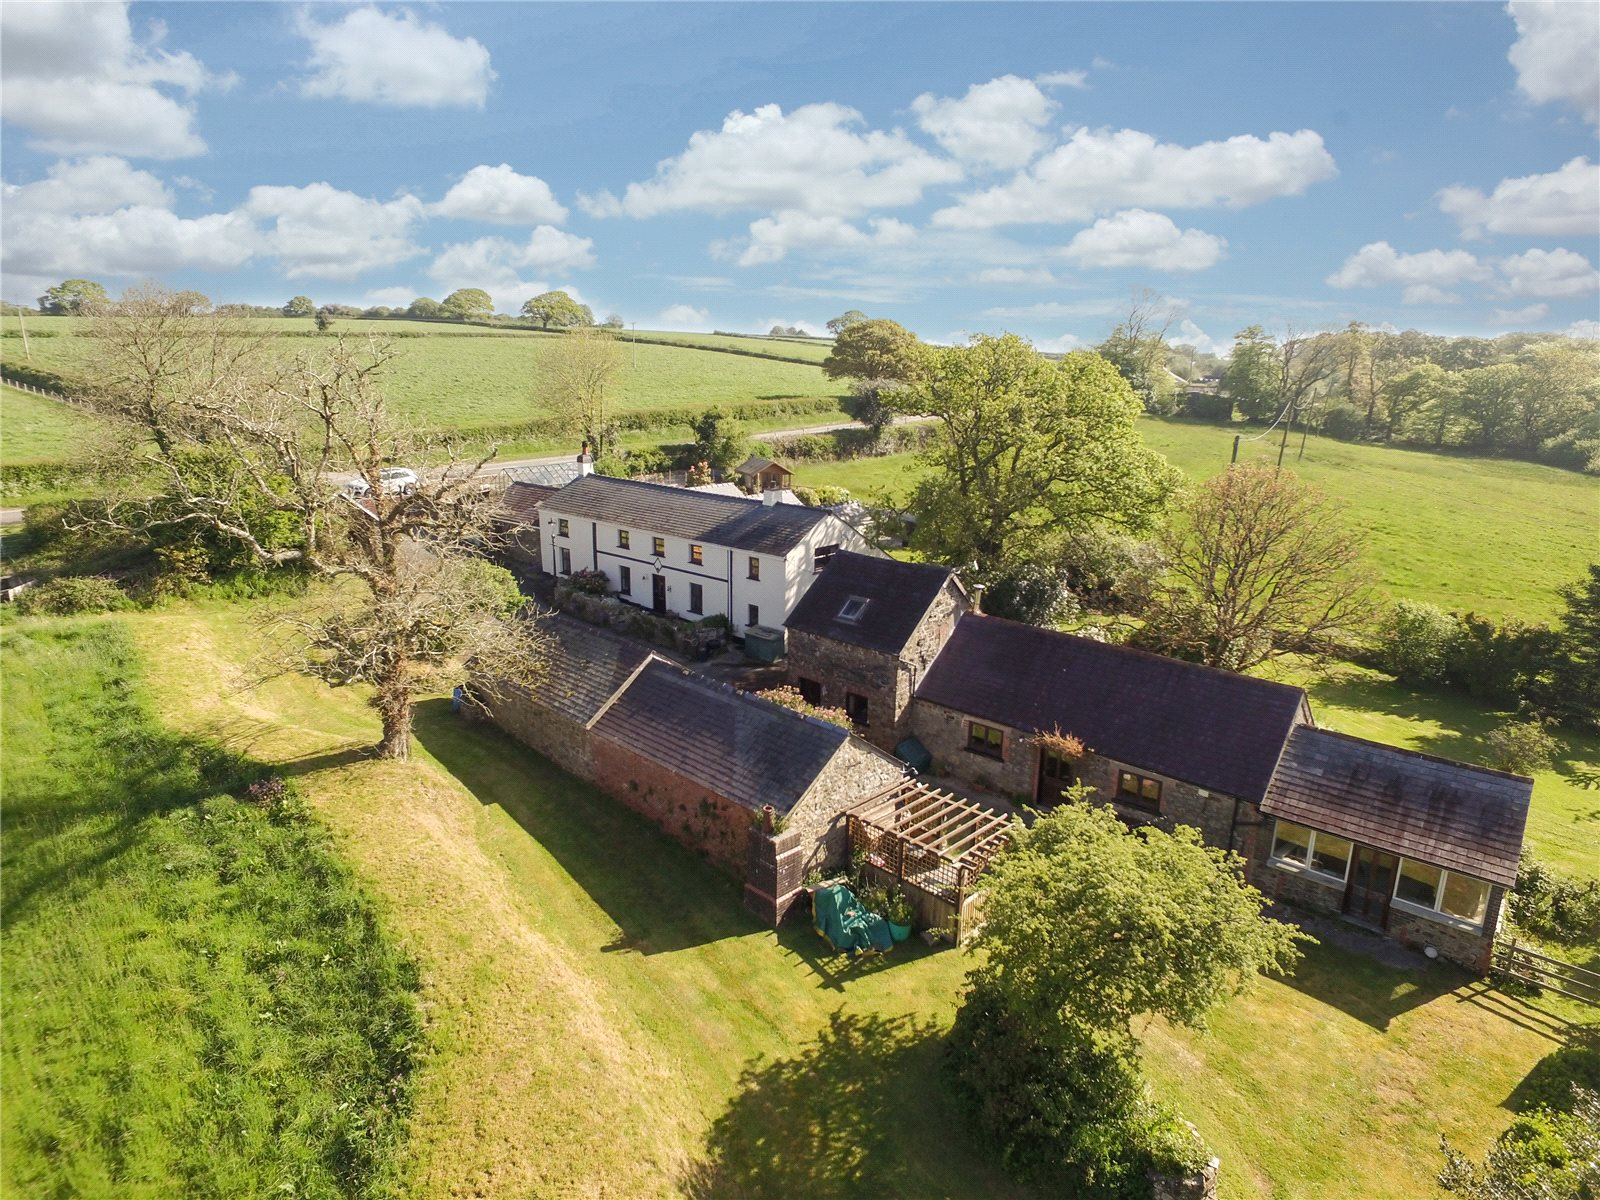 4 Bedrooms Detached House for sale in Cae'rmaenau-Fach, Llanddewi Velfrey, Narberth, Pembrokeshire